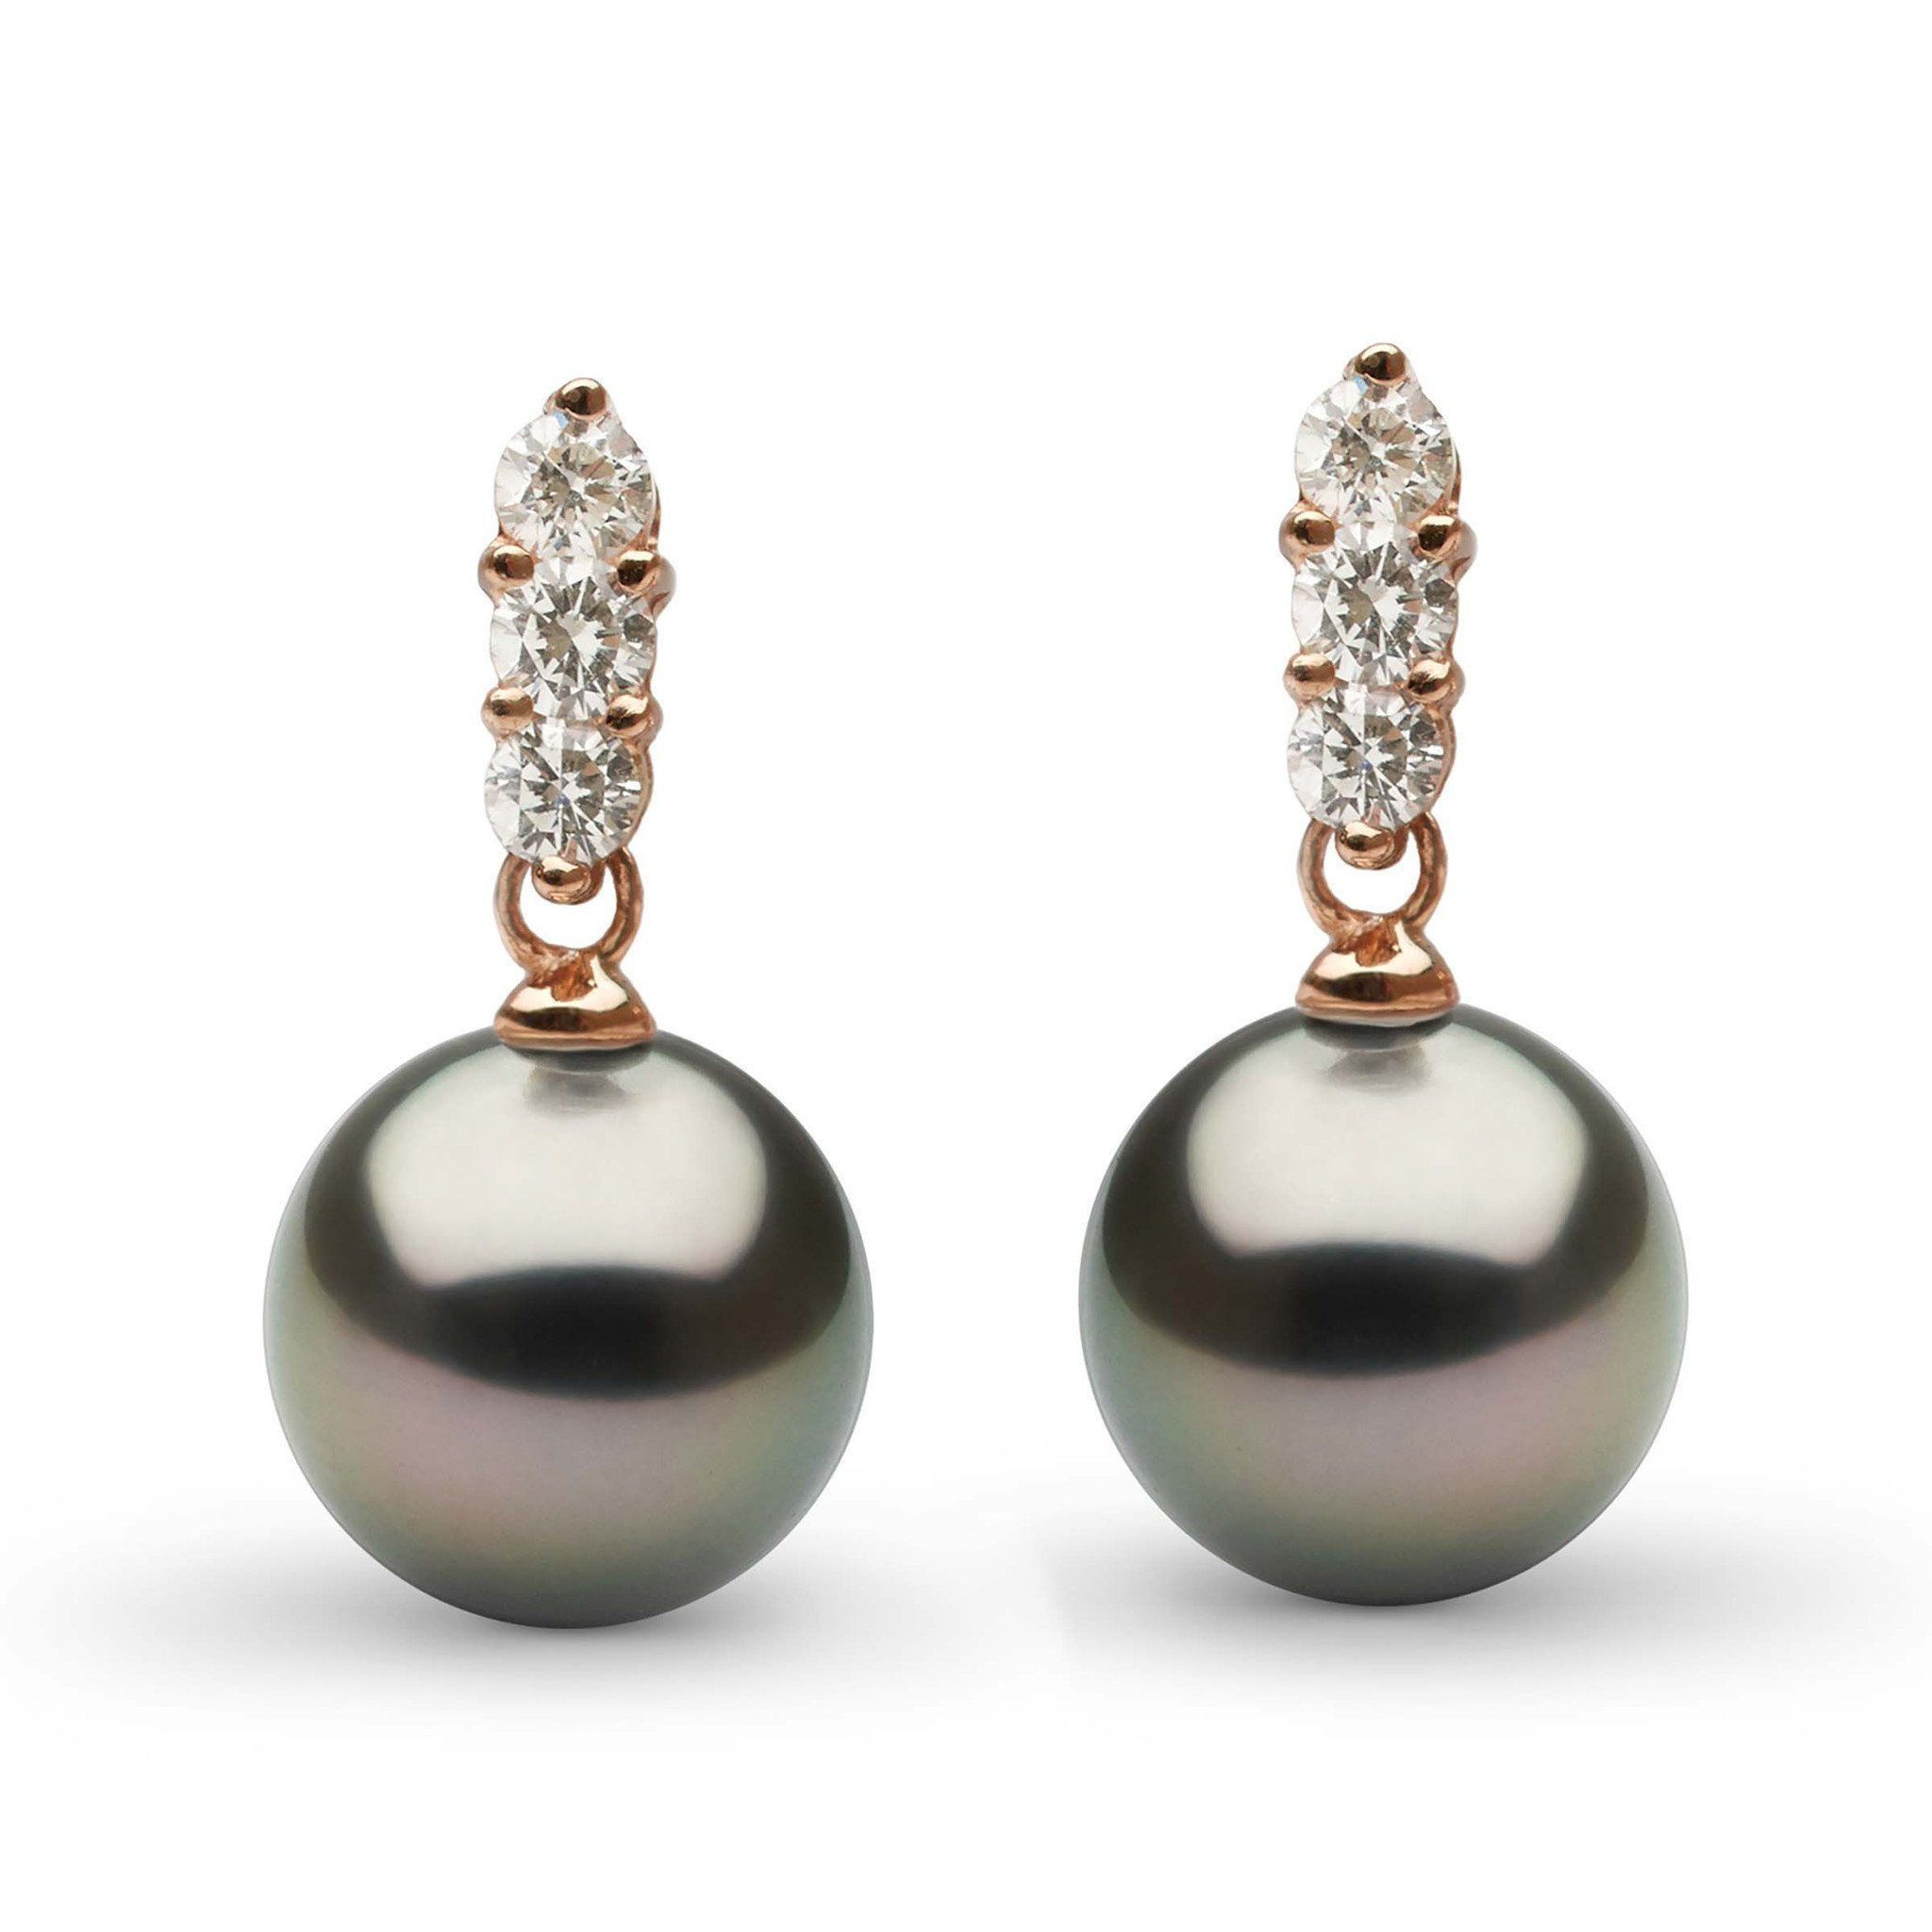 Trio Collection Tahitian 9.0-10.0 mm Pearl and Diamond Earrings